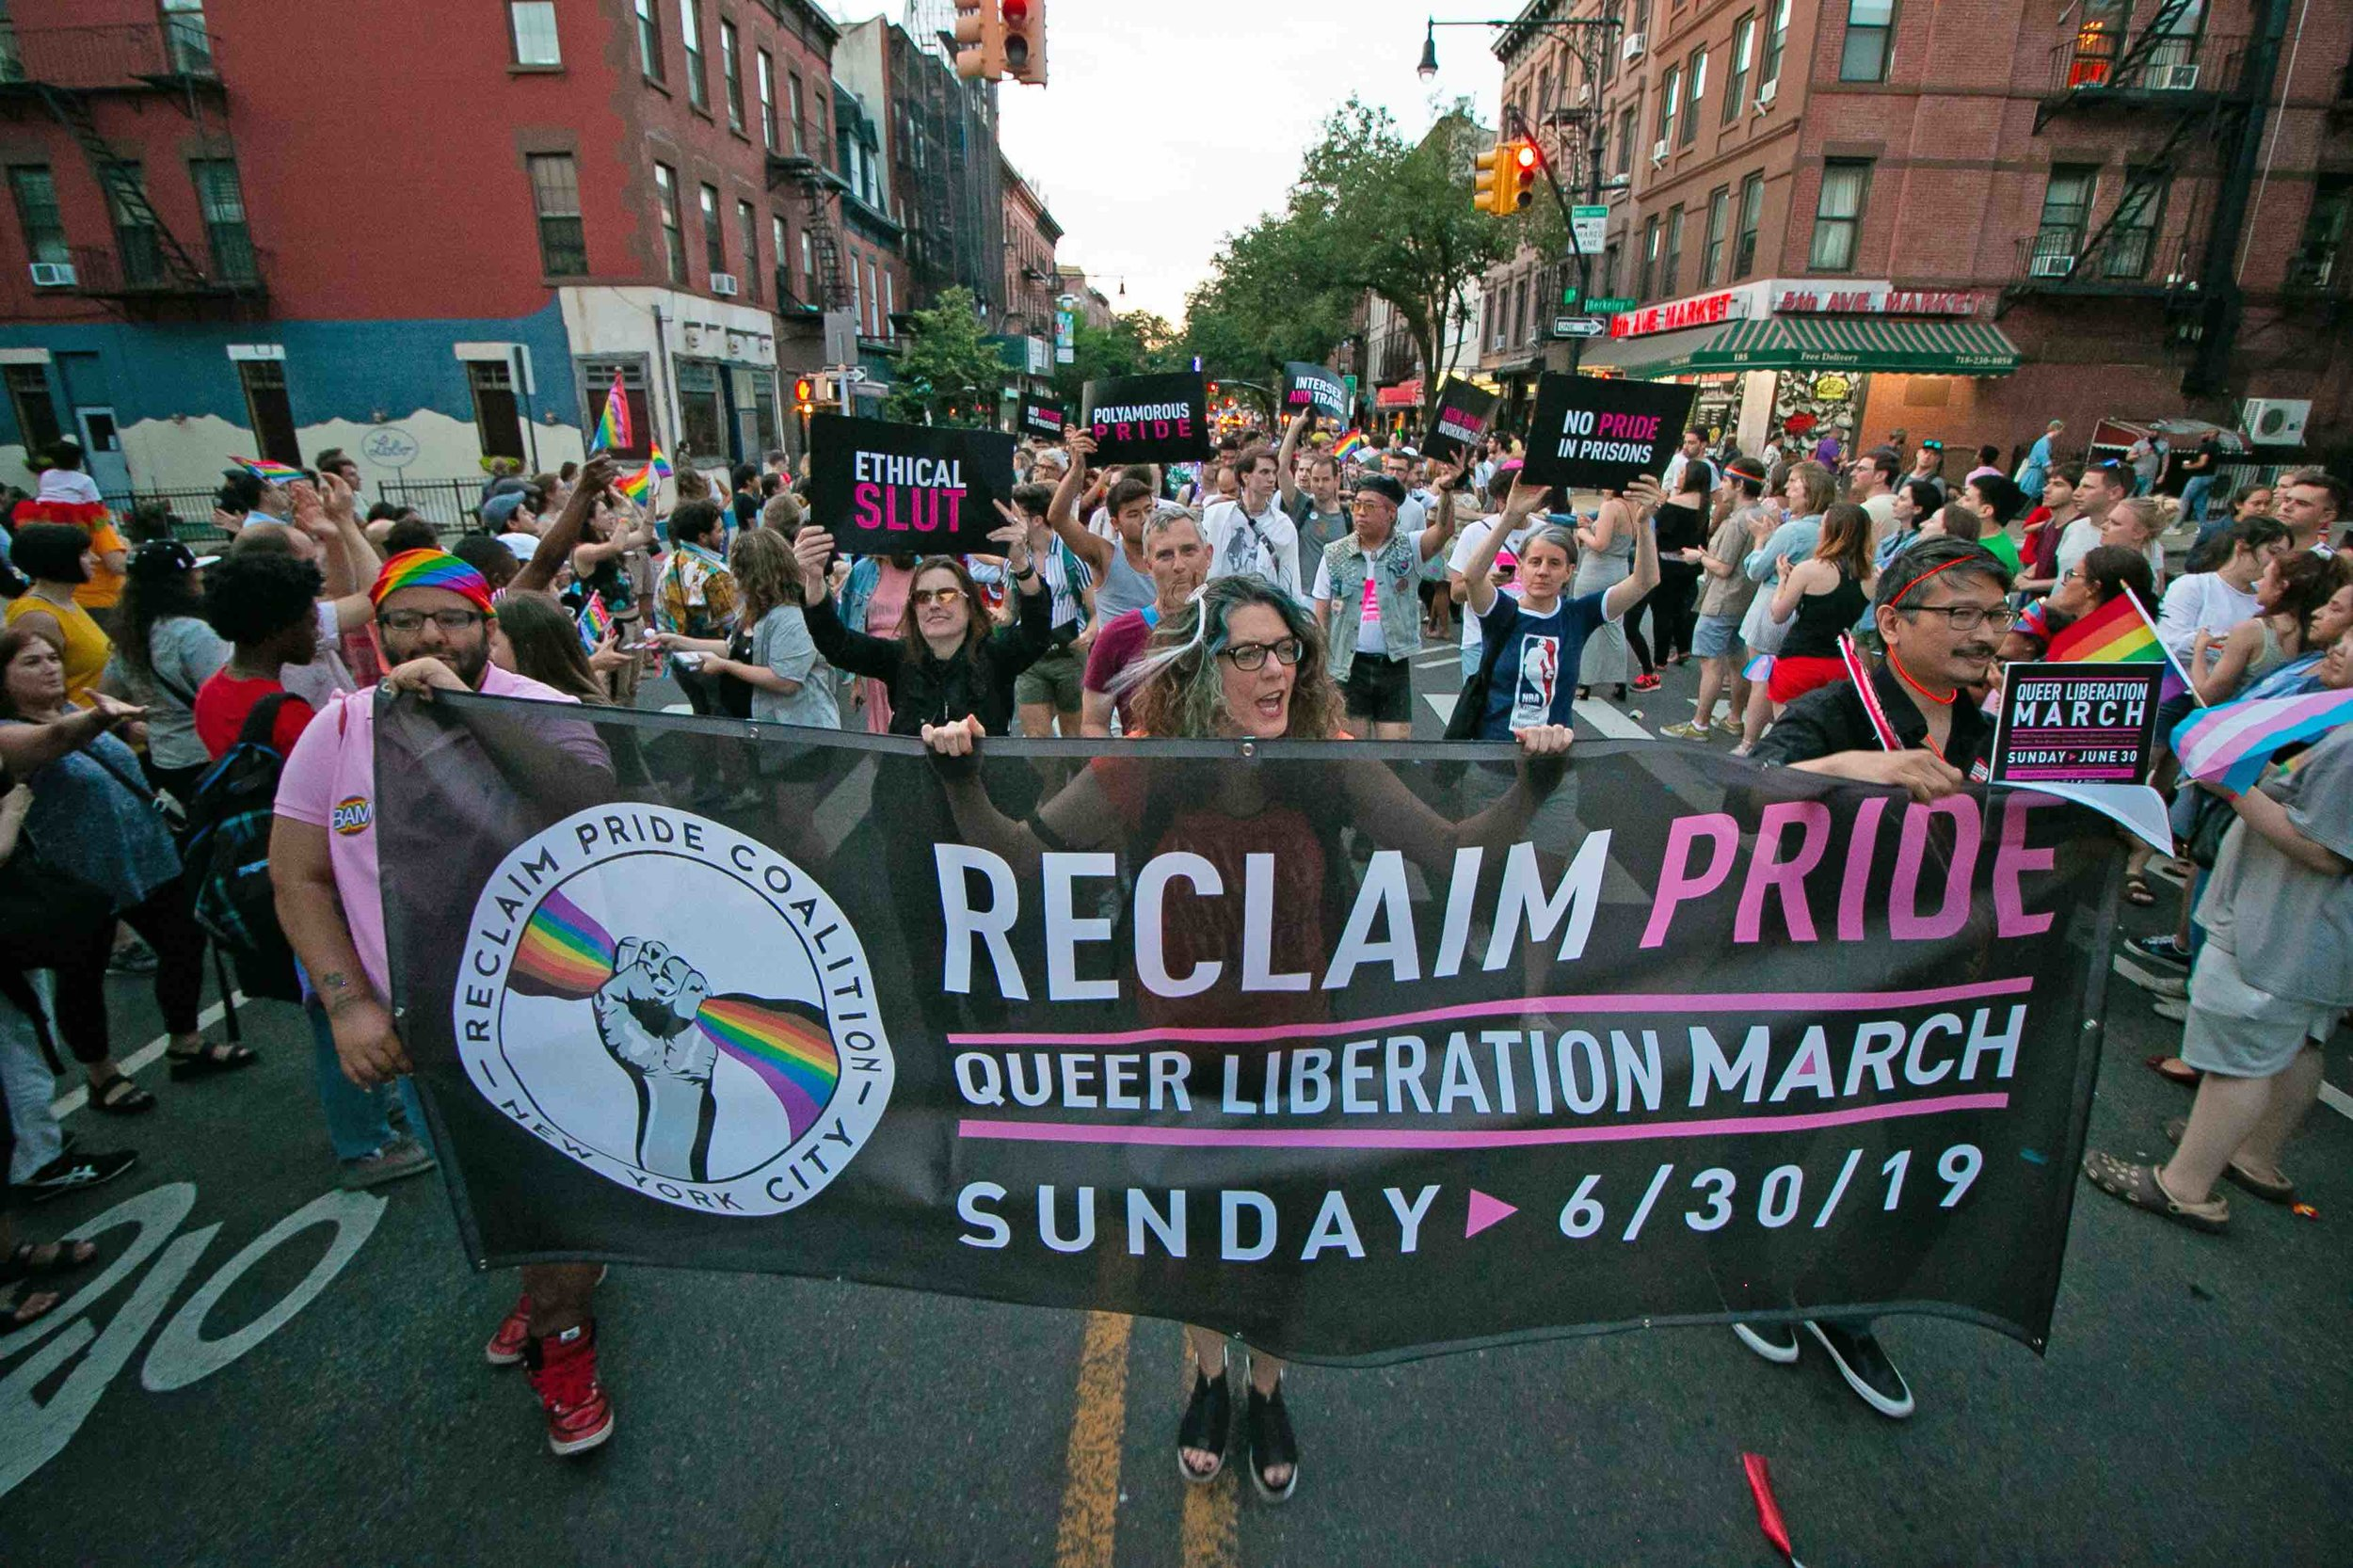 Photo courtesy of Reclaim Pride.